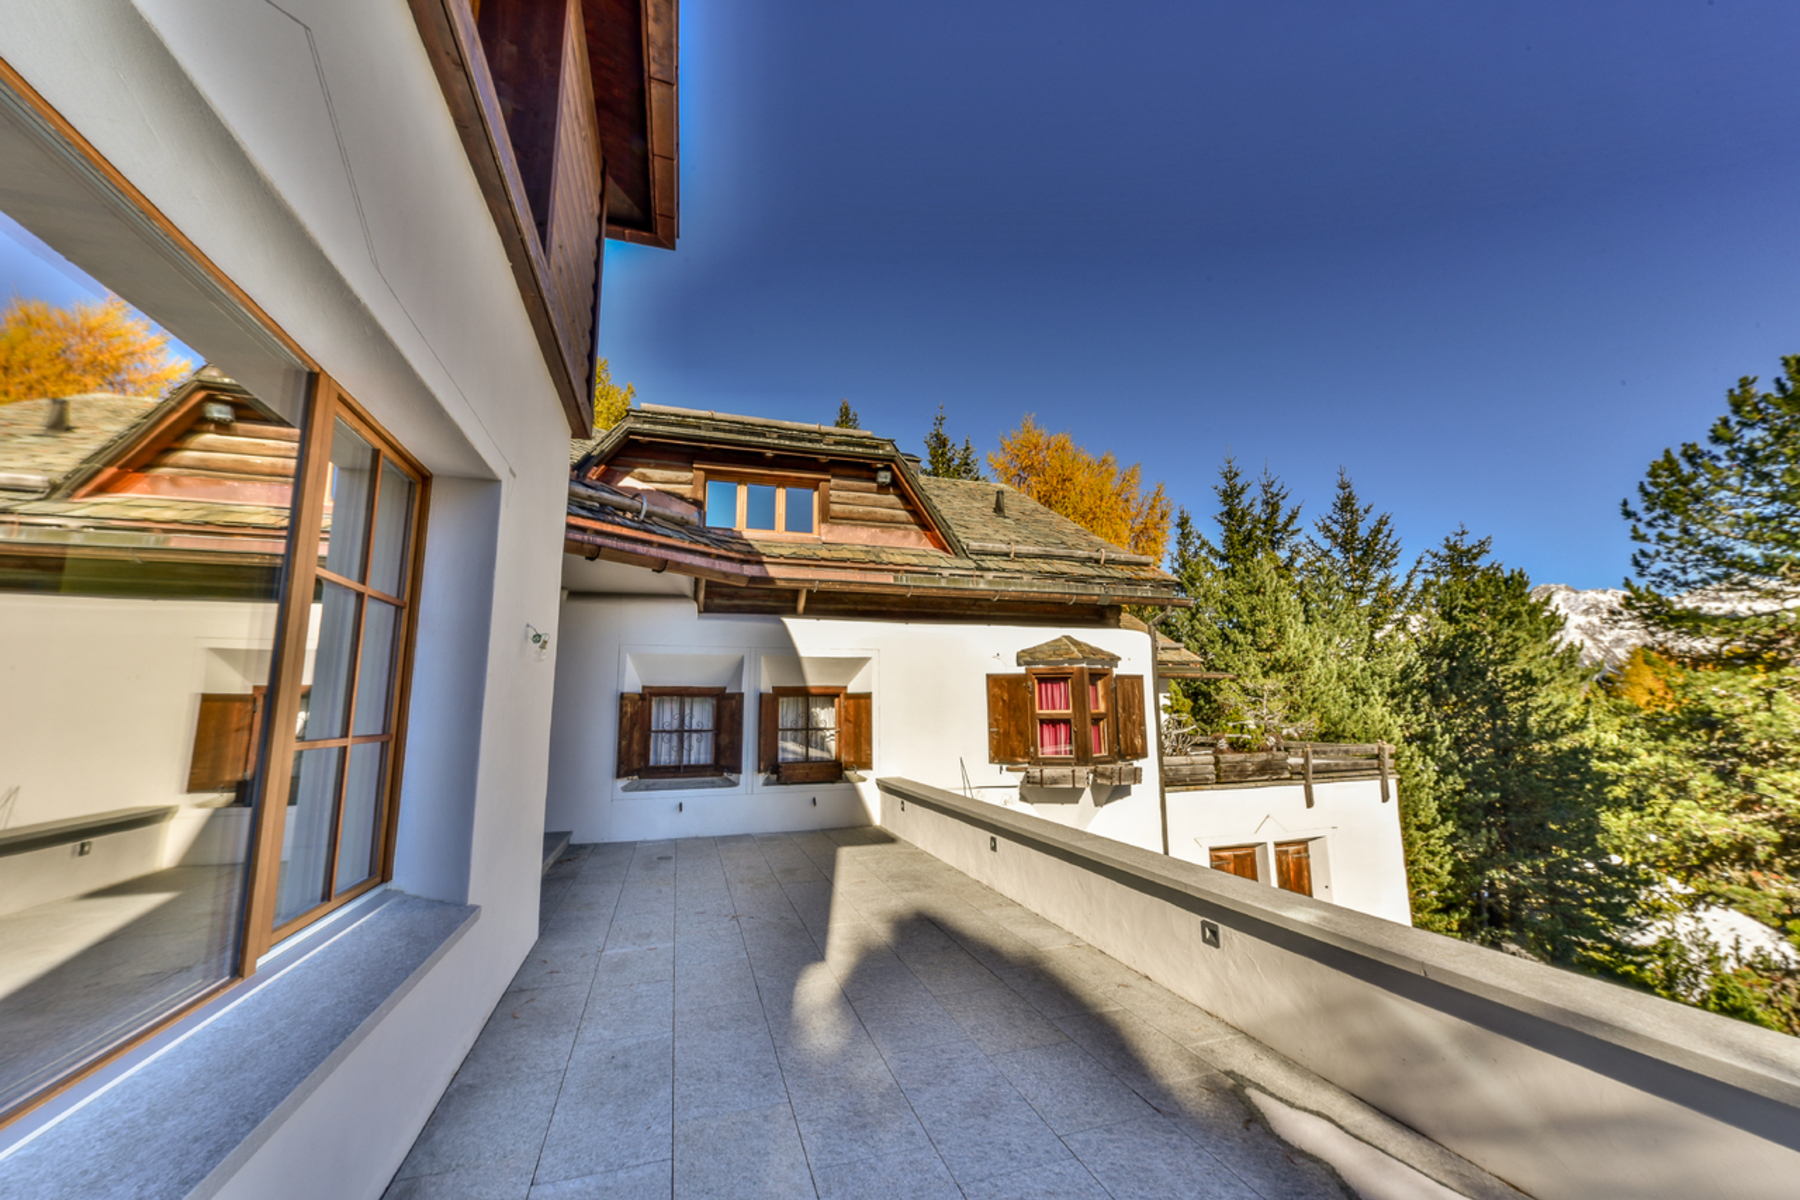 Maison unifamiliale pour l Vente à Luxurious villa on the Suvretta hillside St. Moritz, Grisons, 7500 Suisse